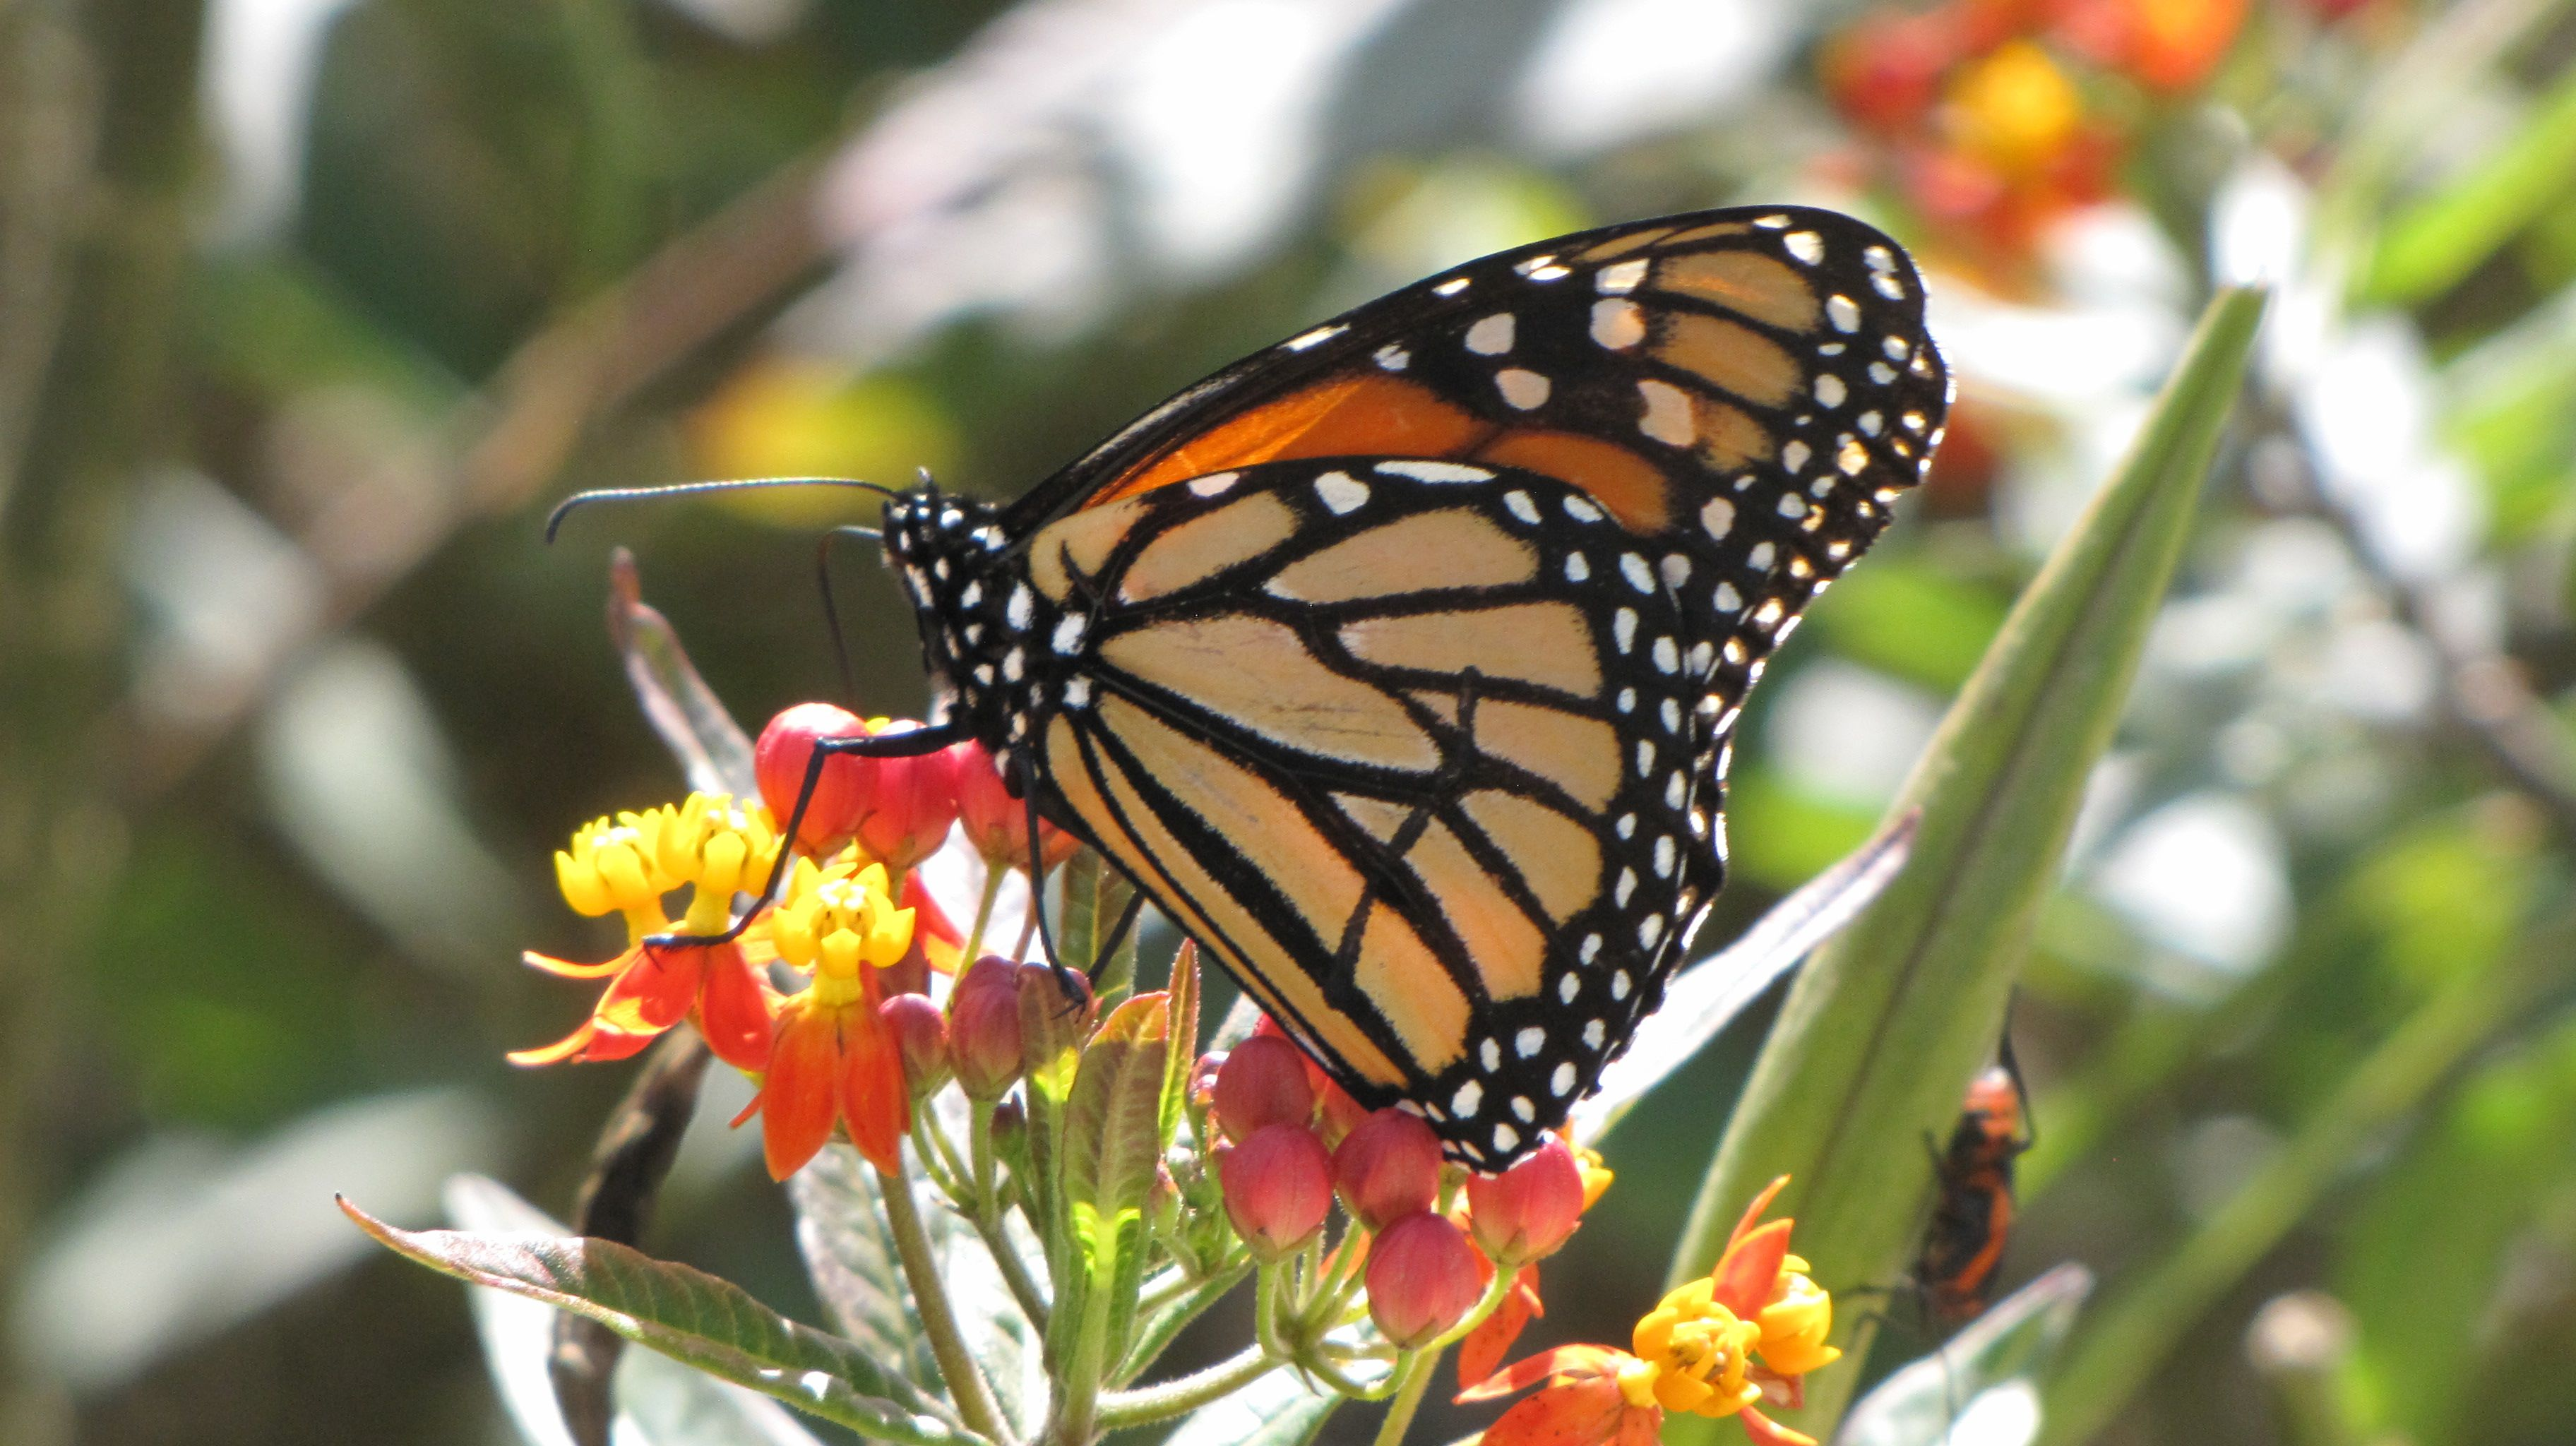 an analysis of monarch butterflies and butterfly weed Latest research create has shown can weed out sick butterflies and provide an together to study monarch butterflies and restore butterfly habitat.